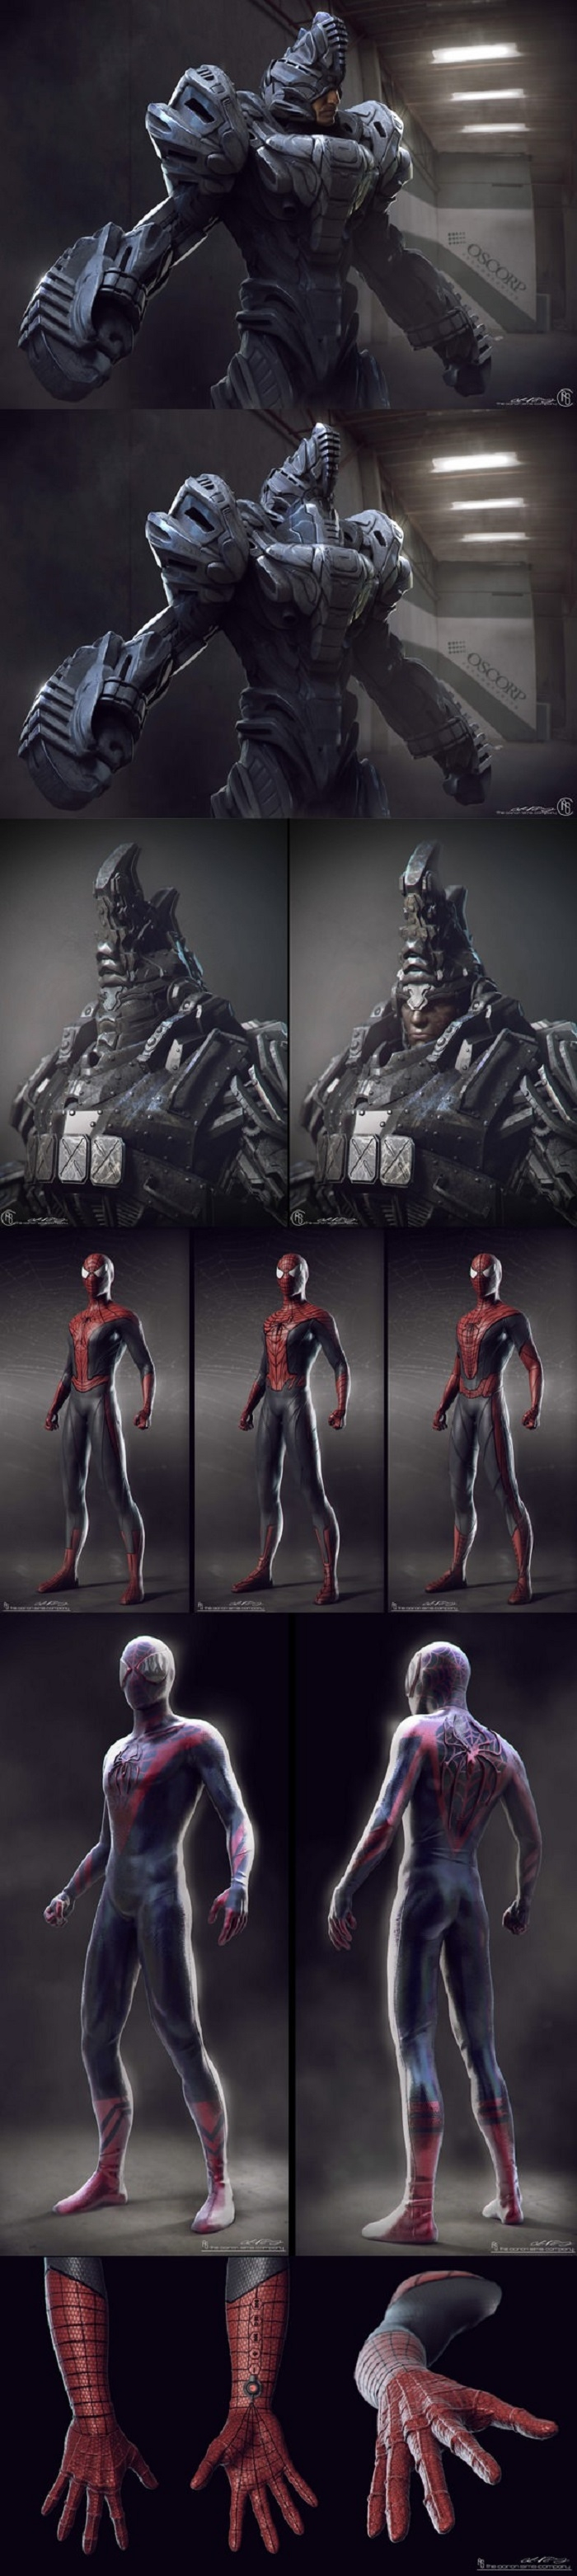 Amazing Spiderman 2 designs